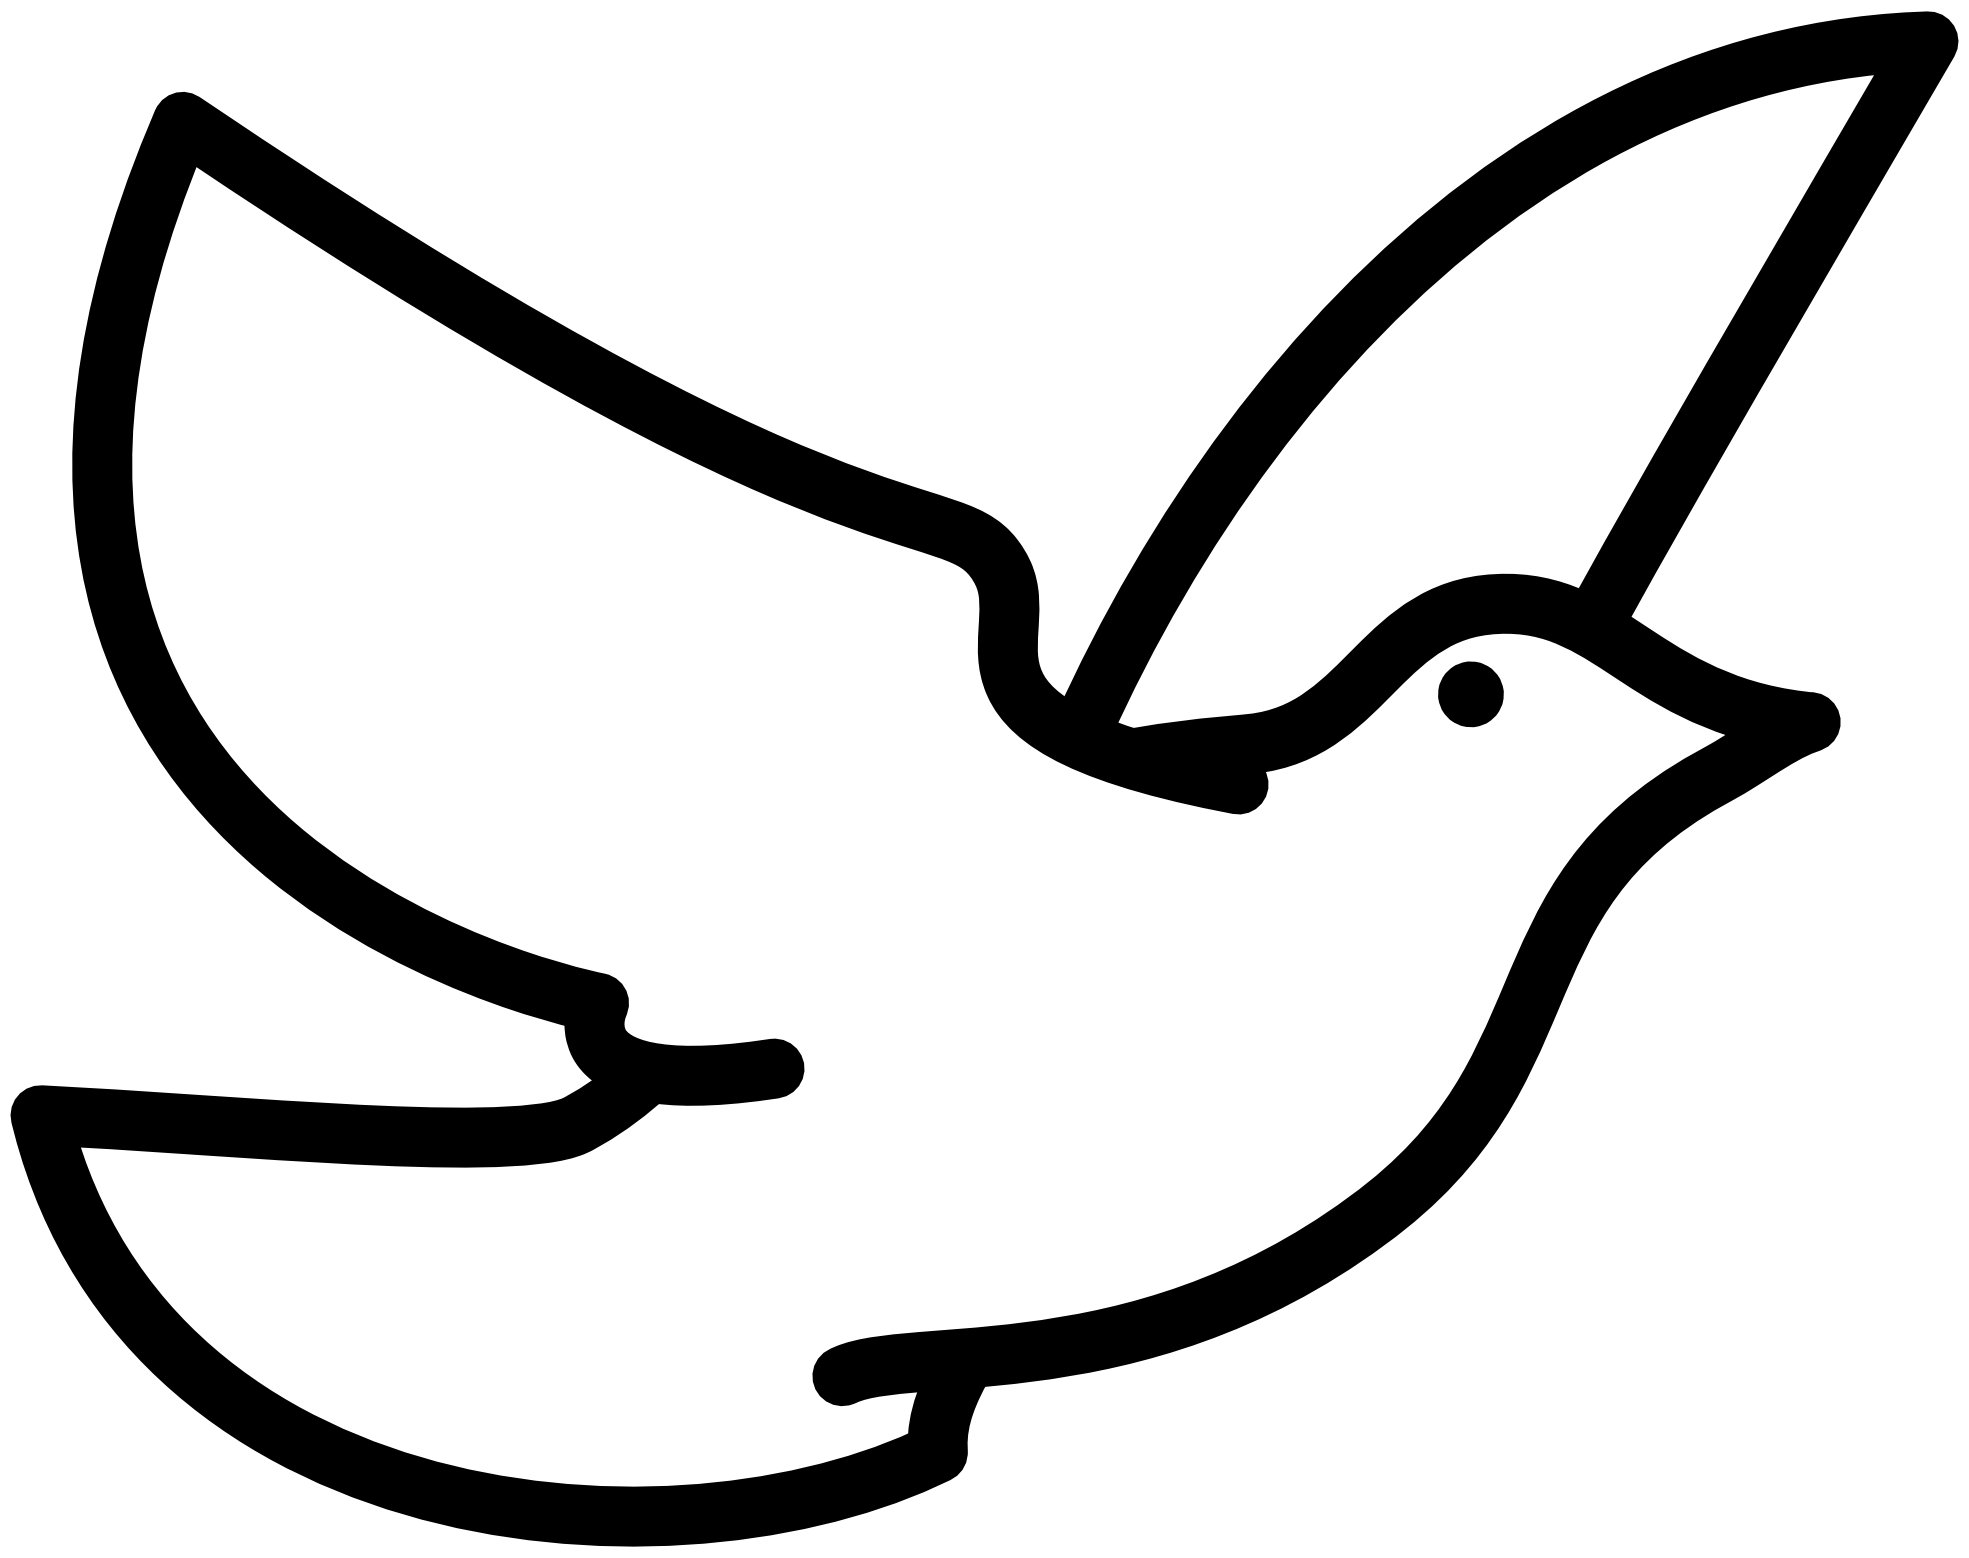 Birds flying up drawing. Vector doves cross picture free stock